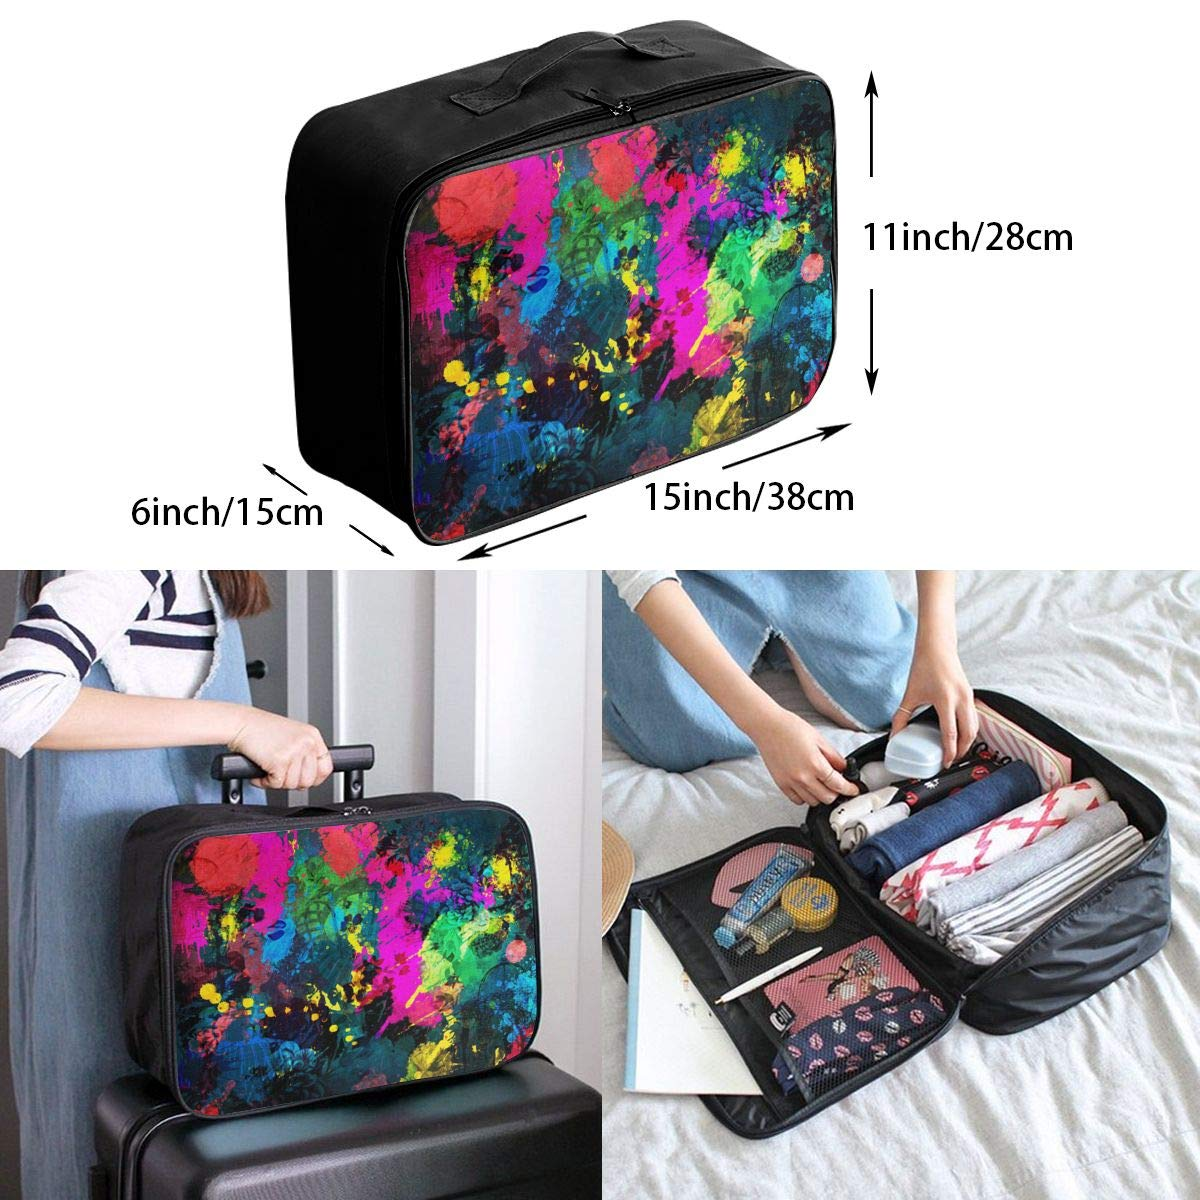 Travel Fashion Lightweight Large Capacity Duffel Portable Waterproof Foldable Storage Carry Luggage Tote Bag Tied And Dyed Tie Dye Graffiti